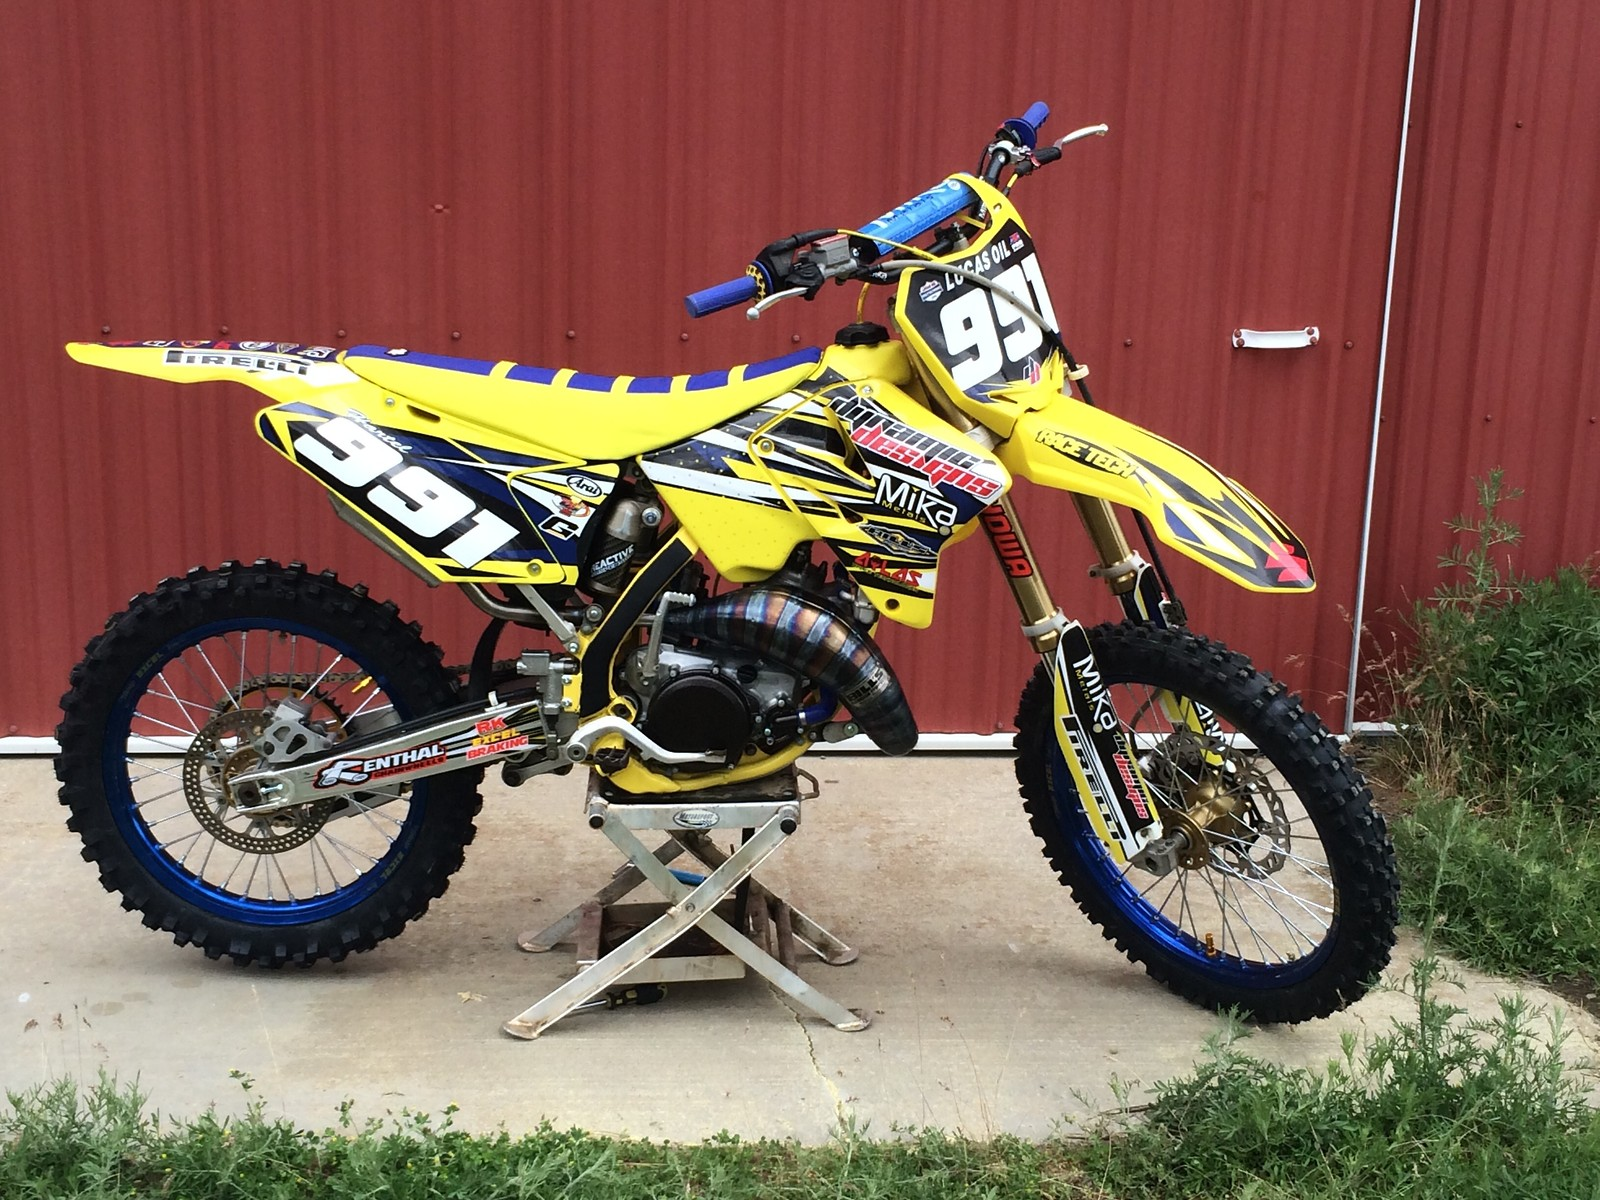 natehartel 39 s 2005 suzuki rm 125 natehartel 39 s bike check vital mx. Black Bedroom Furniture Sets. Home Design Ideas